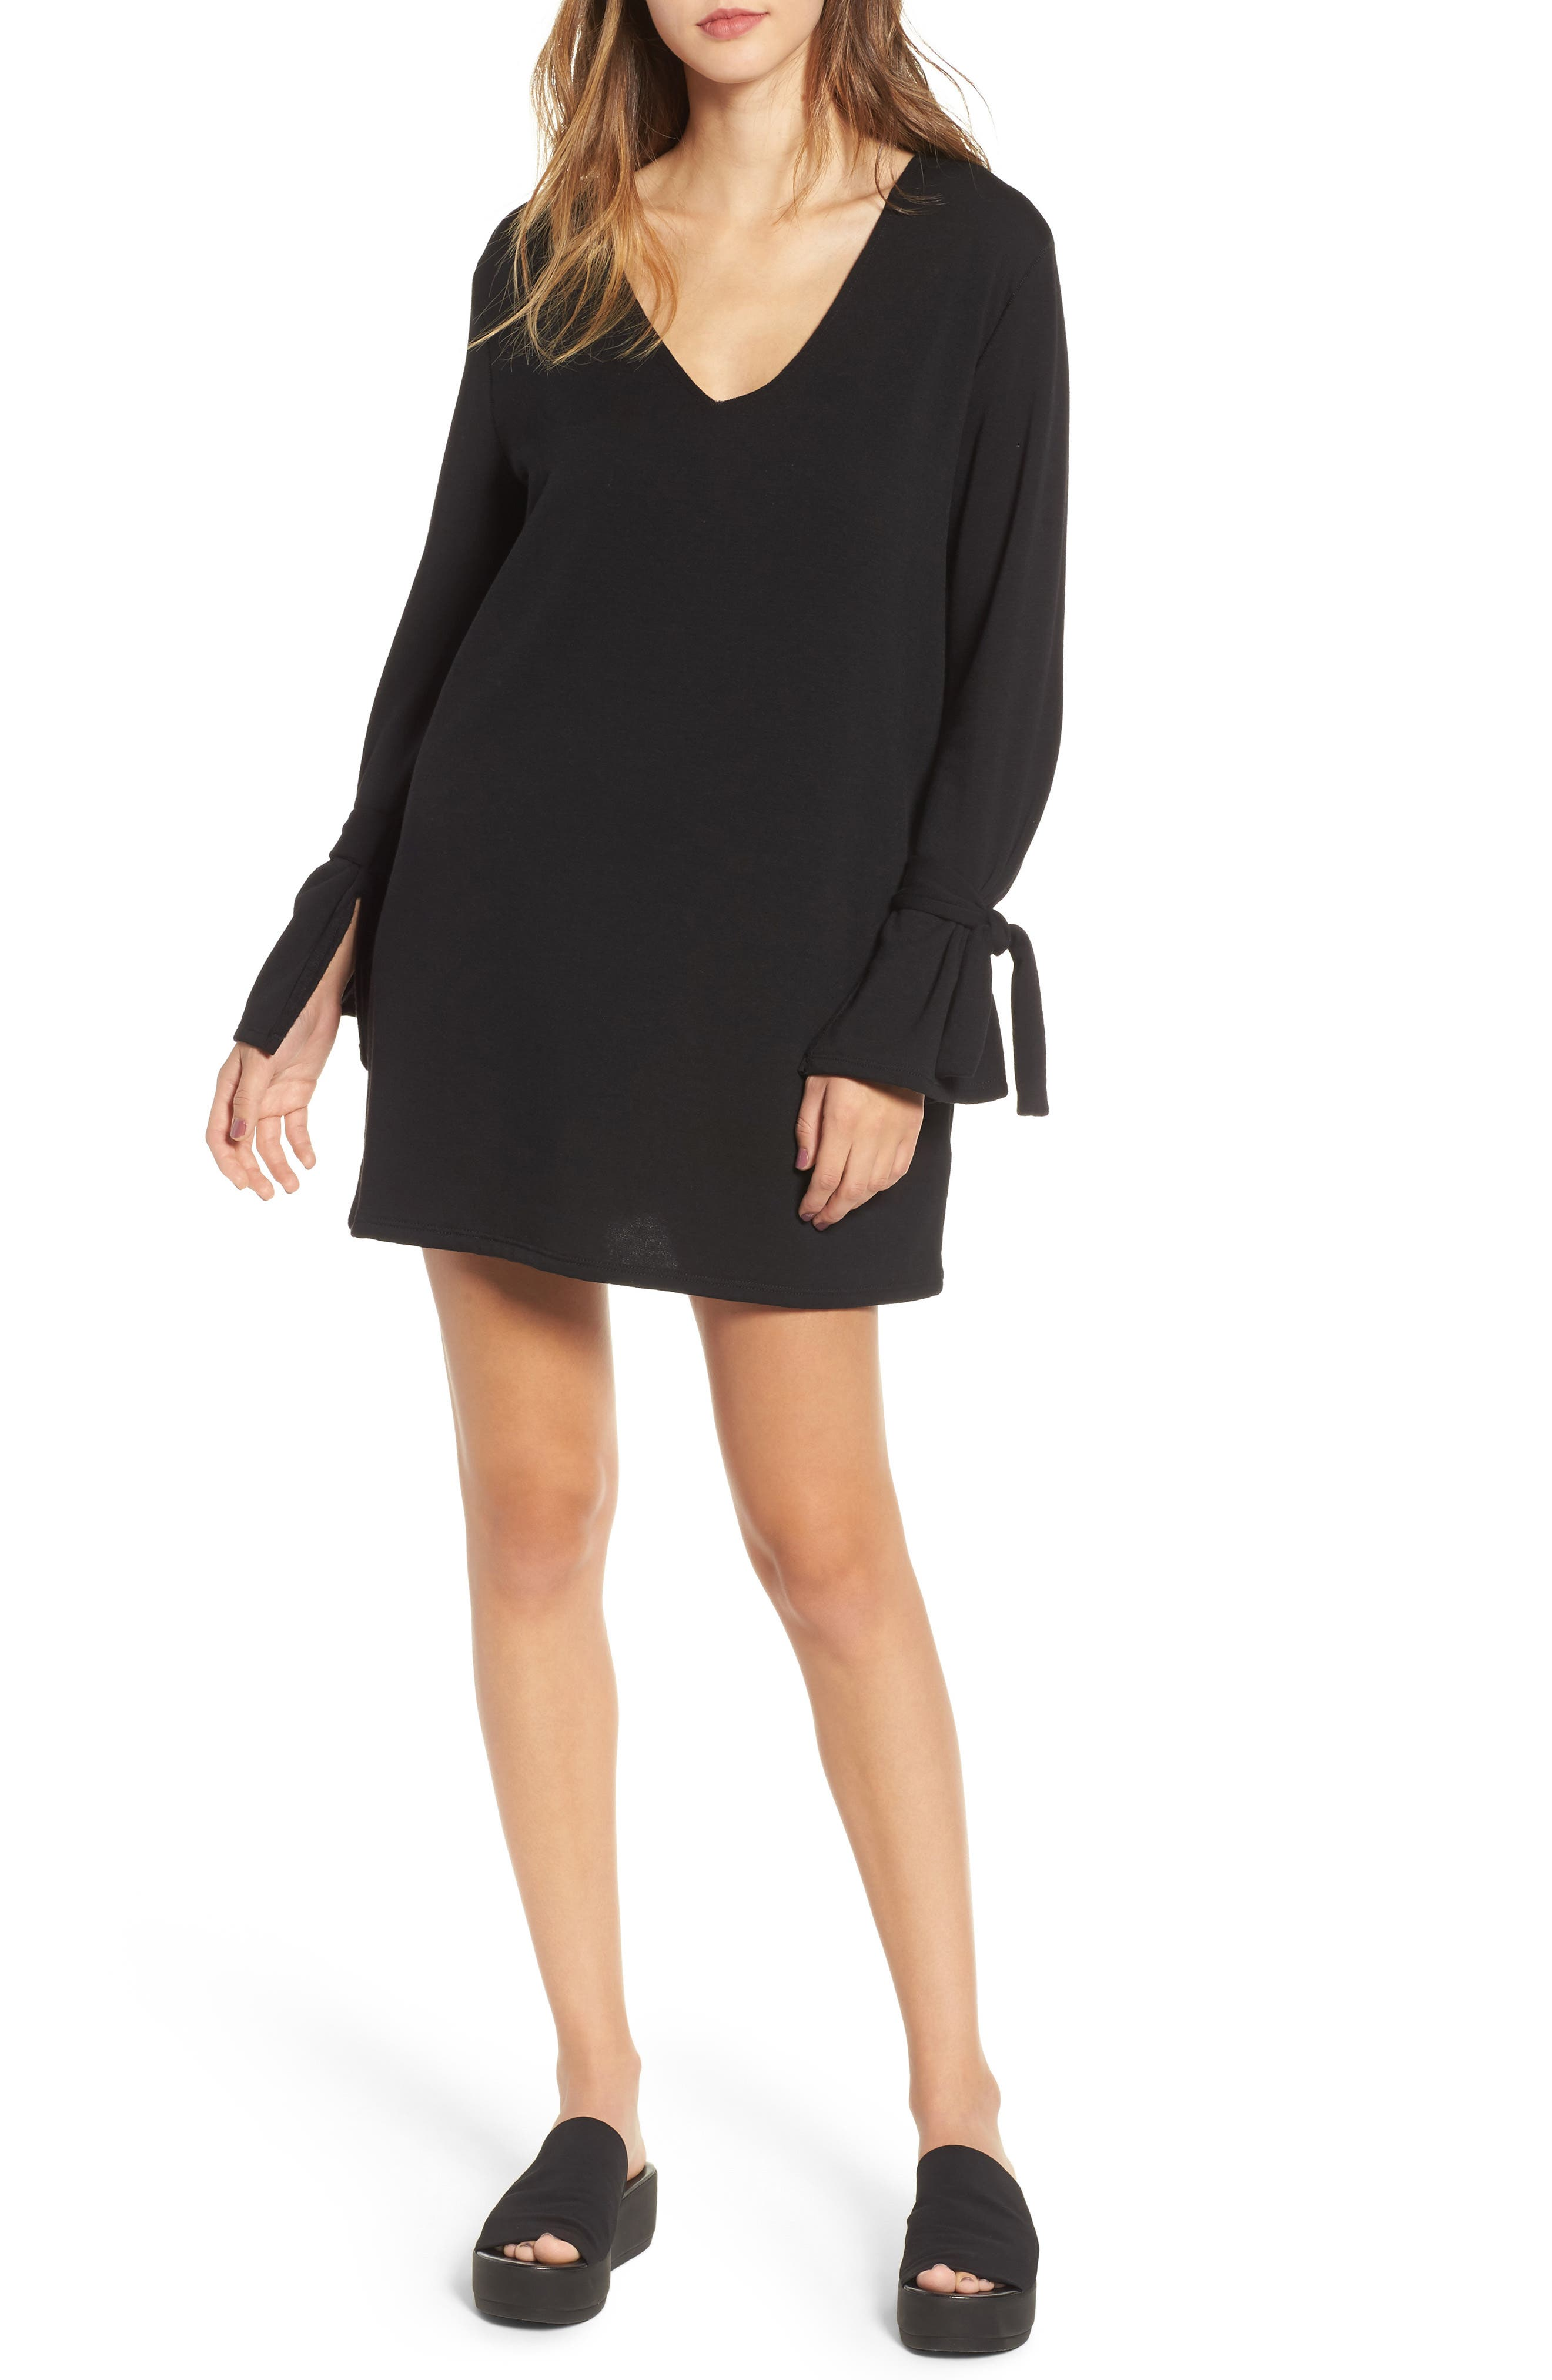 Main Image - PST by Project Social T Tie Sleeve Shift Dress